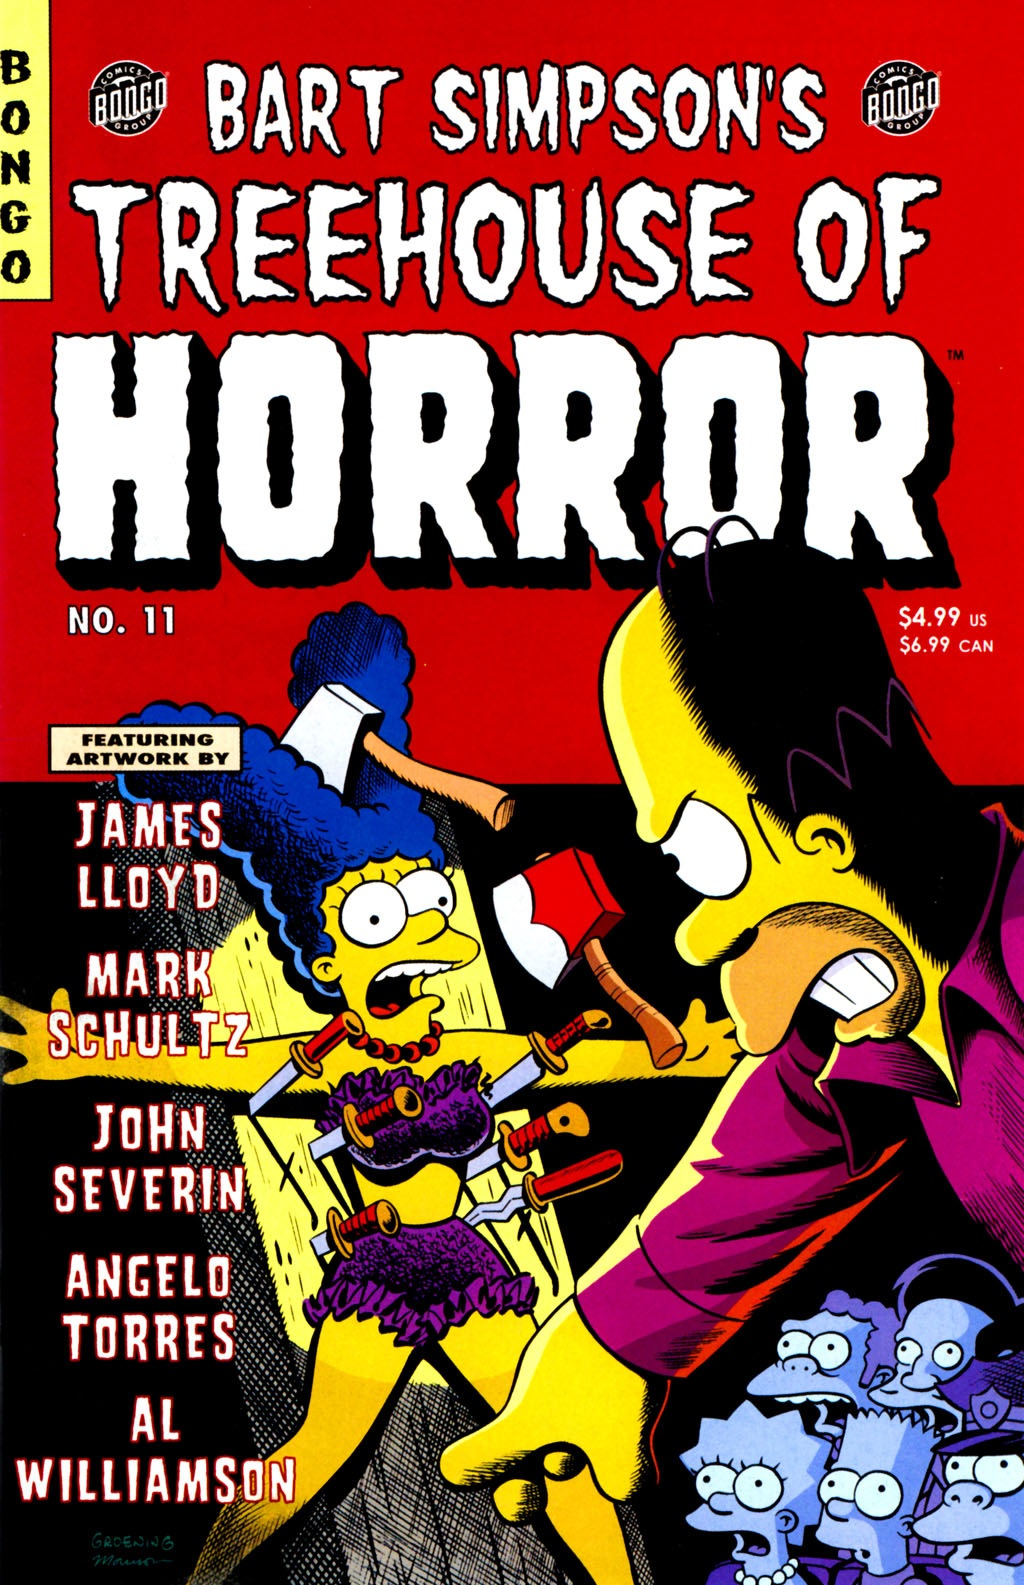 Treehouse Of Horror Episodes Online Part - 16: Simpson Treehouse Of Horror Episodes Online